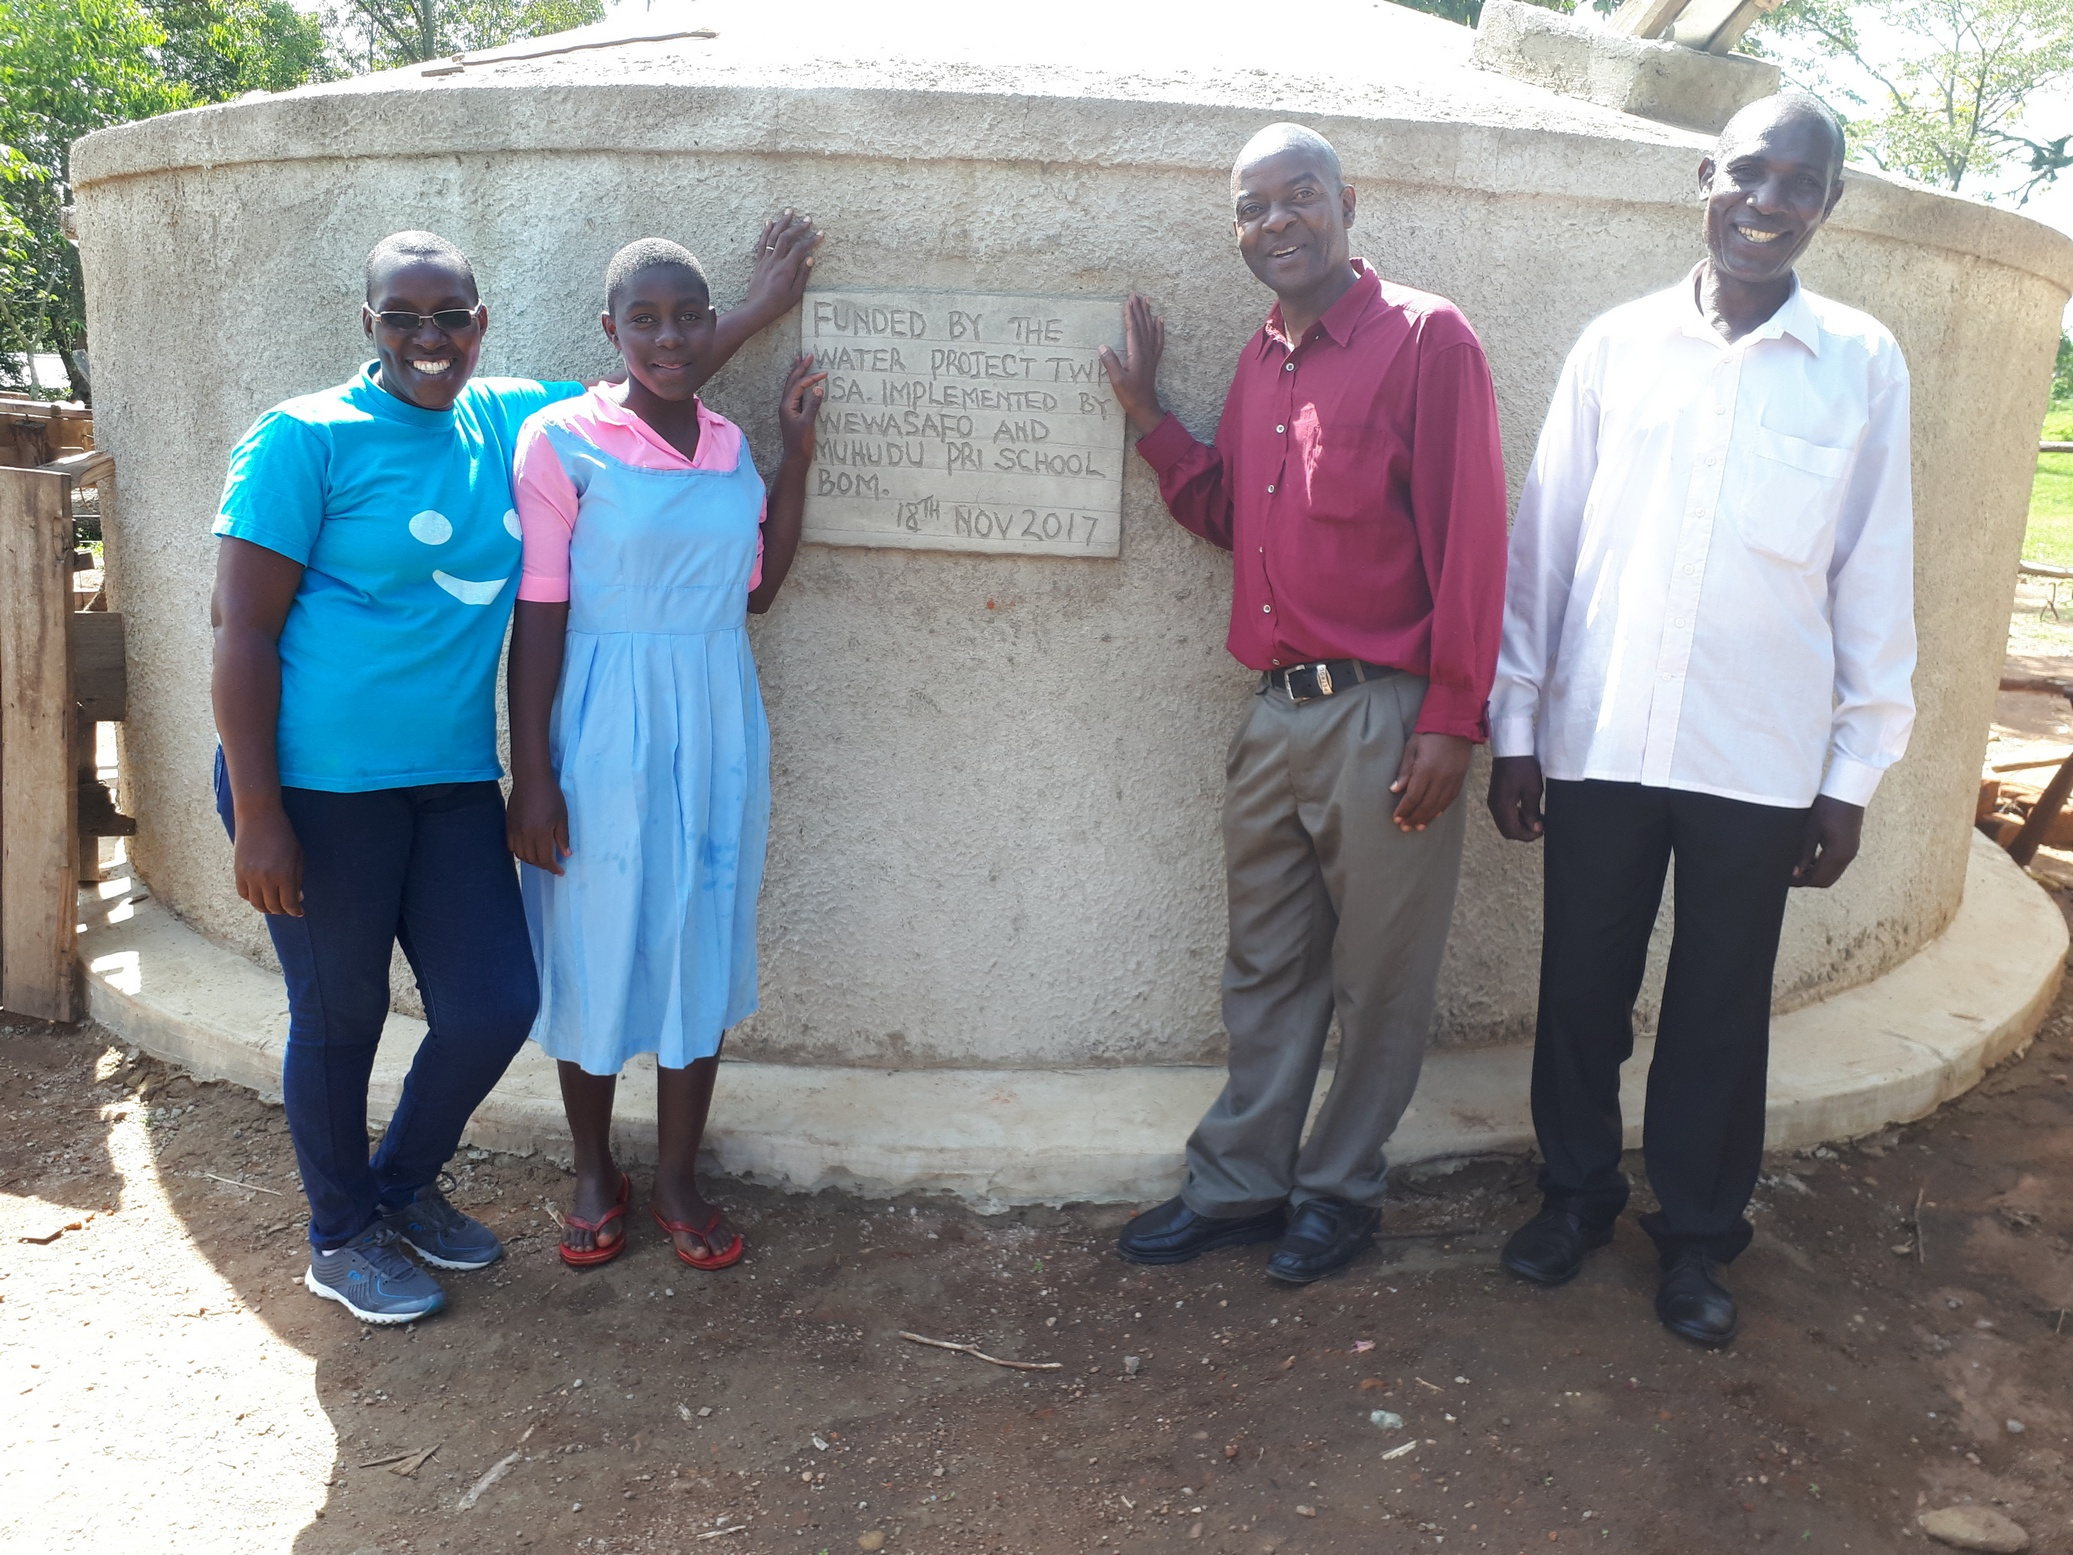 The Water Project : kenya4688-field-officer-janet-kayi-wilikister-kageha-deputy-headteacher-david-ivayo-imbayia-and-solomon-msolo